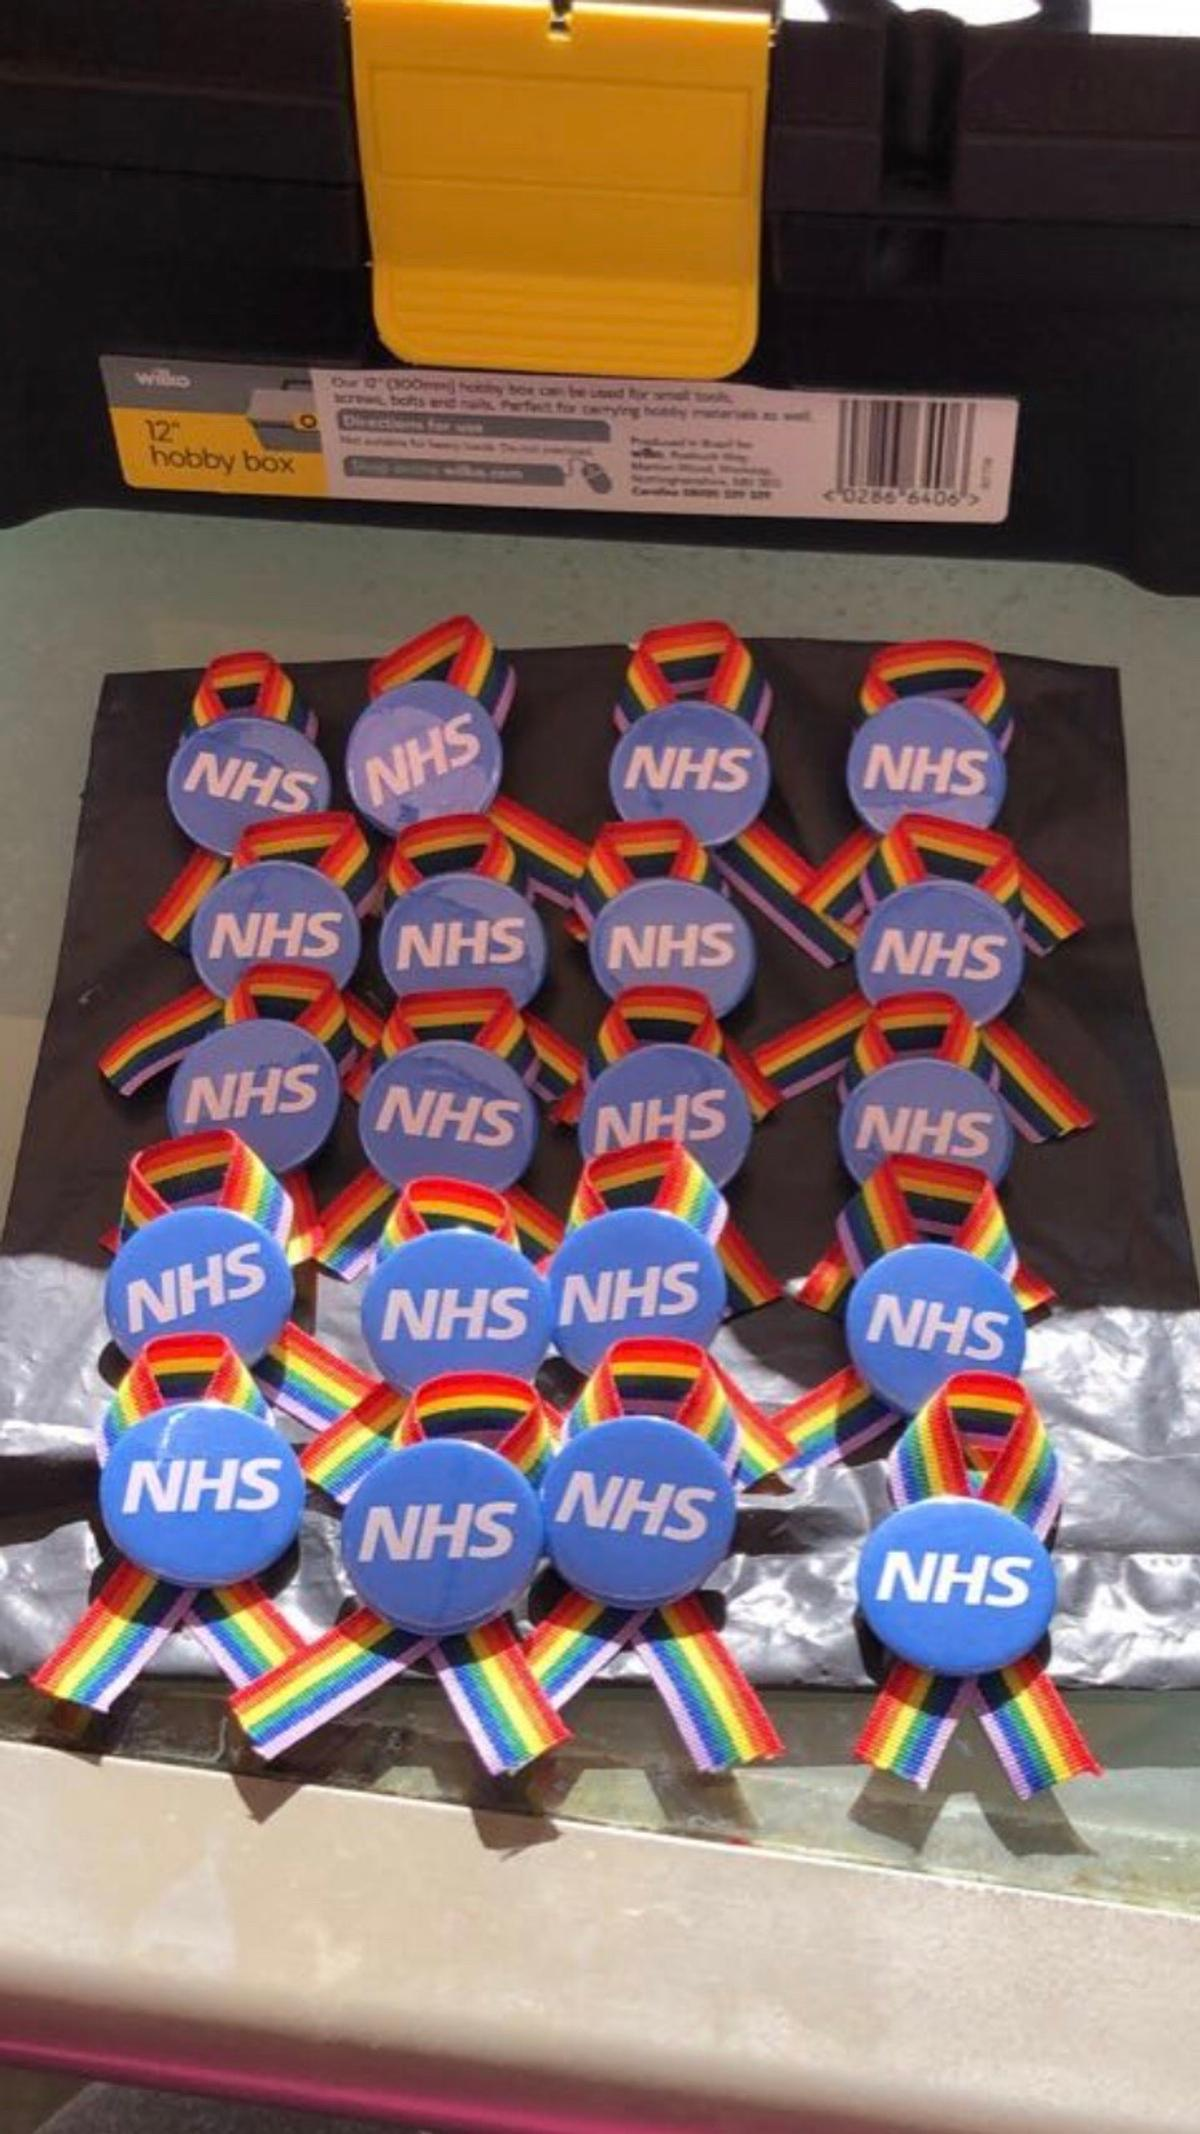 Nhs badges made by my autistic son 100% proceeds go to the nhs For all there fantastic work they have done during this unpresidented times . I can deliver any where in the uk . So please let's all raise money for these fantastic people who are risking their life's to save us from harm 😊